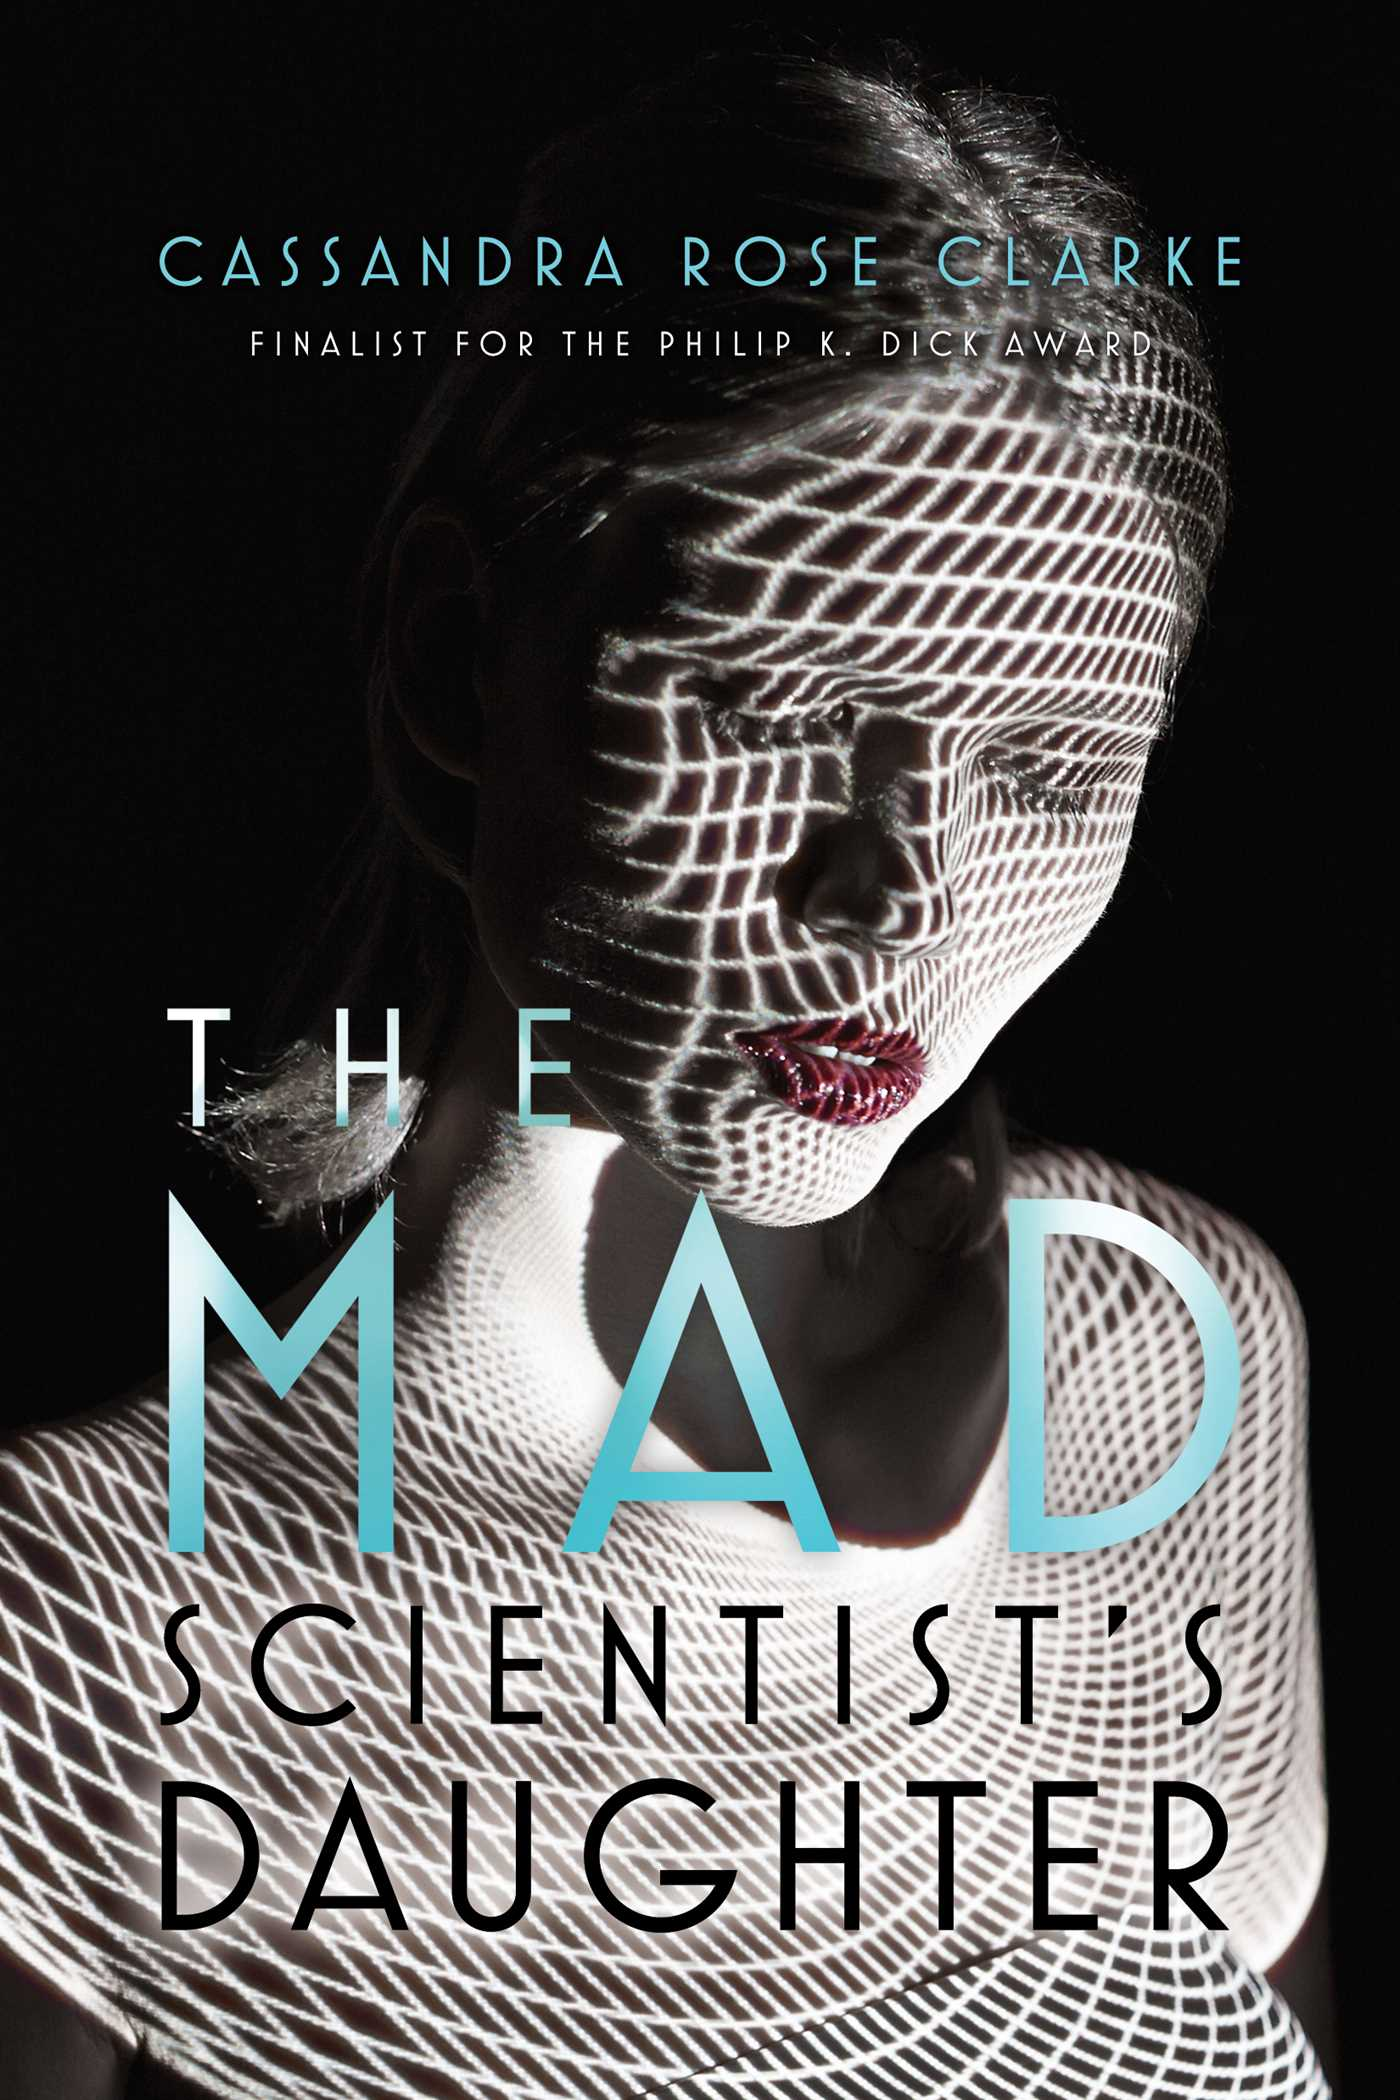 The mad scientists daughter 9781481461689 hr